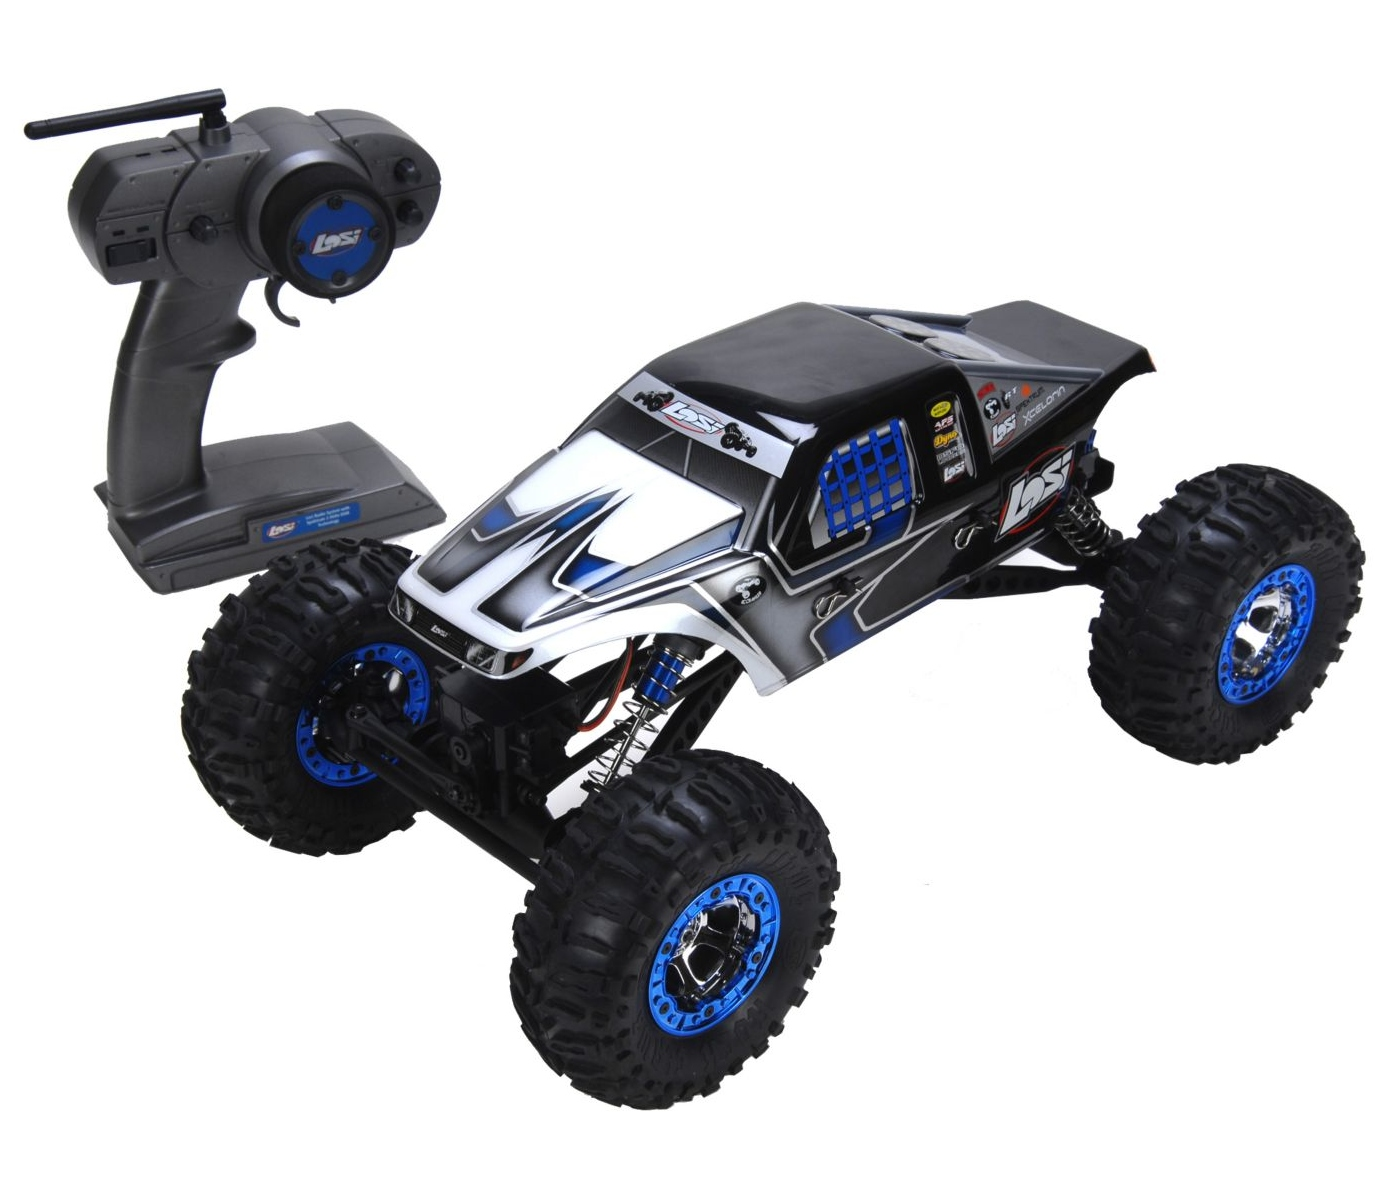 Краулер 1/10 -  Night Crawler RTR: Черный LOSB0104T1